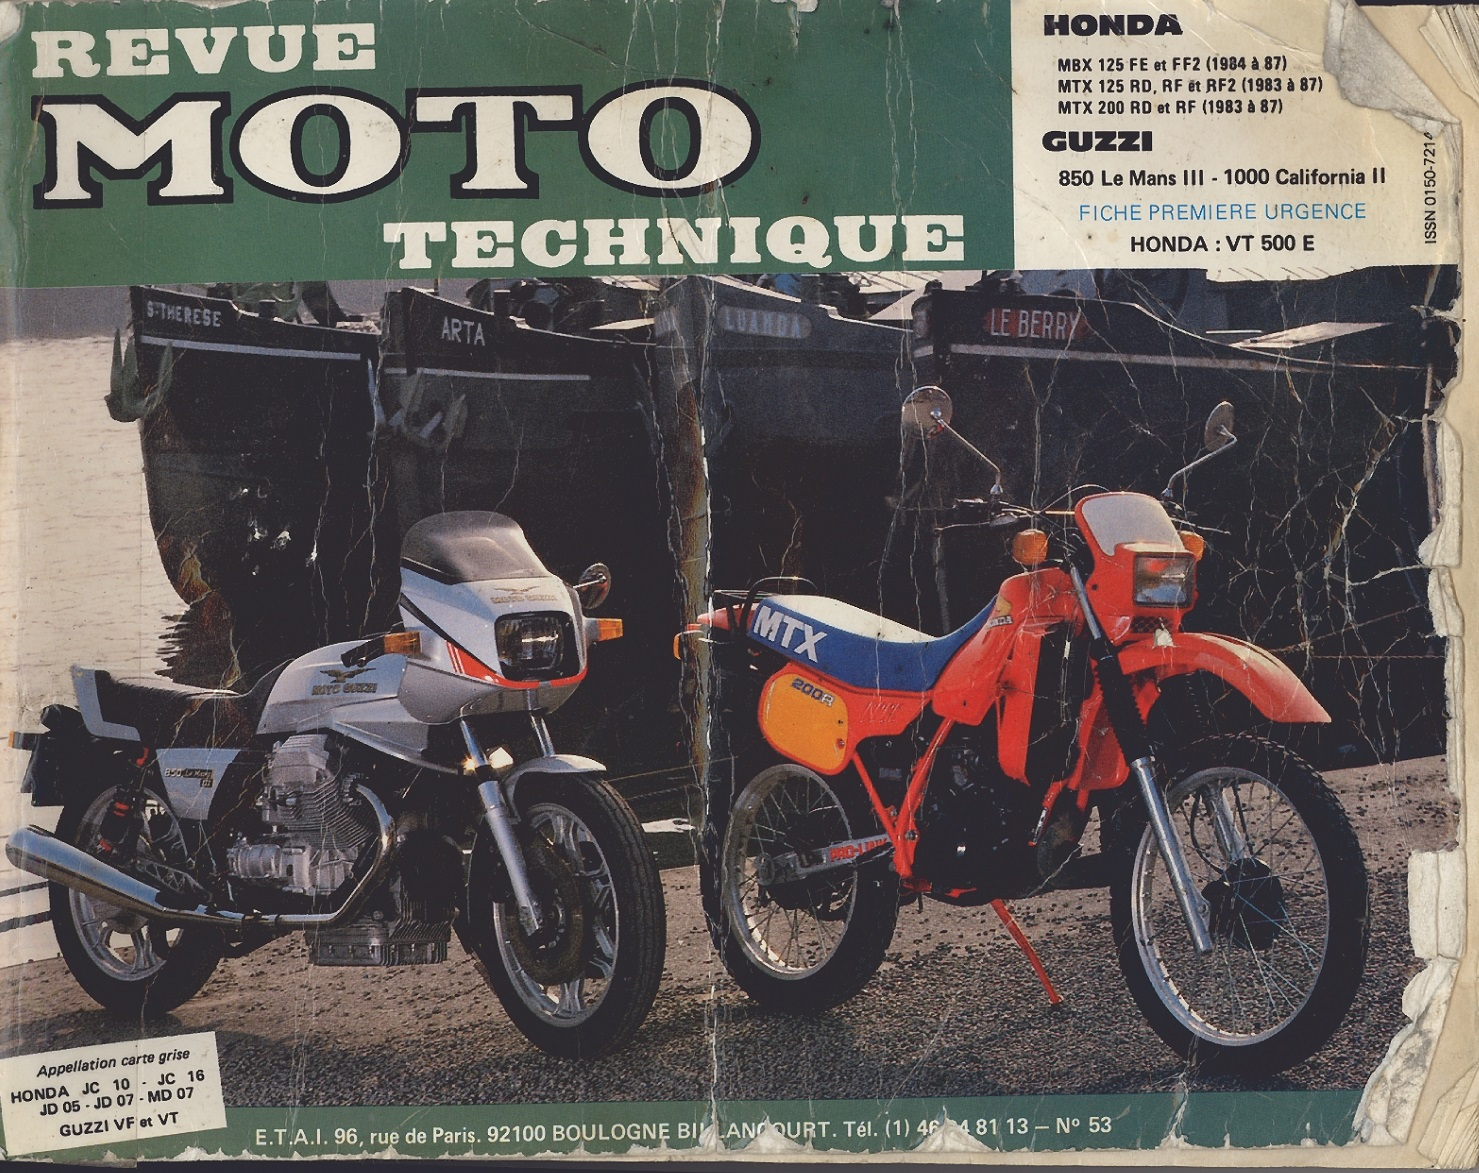 Workshop Manual for Honda MBX125FF2 (1984-1987)